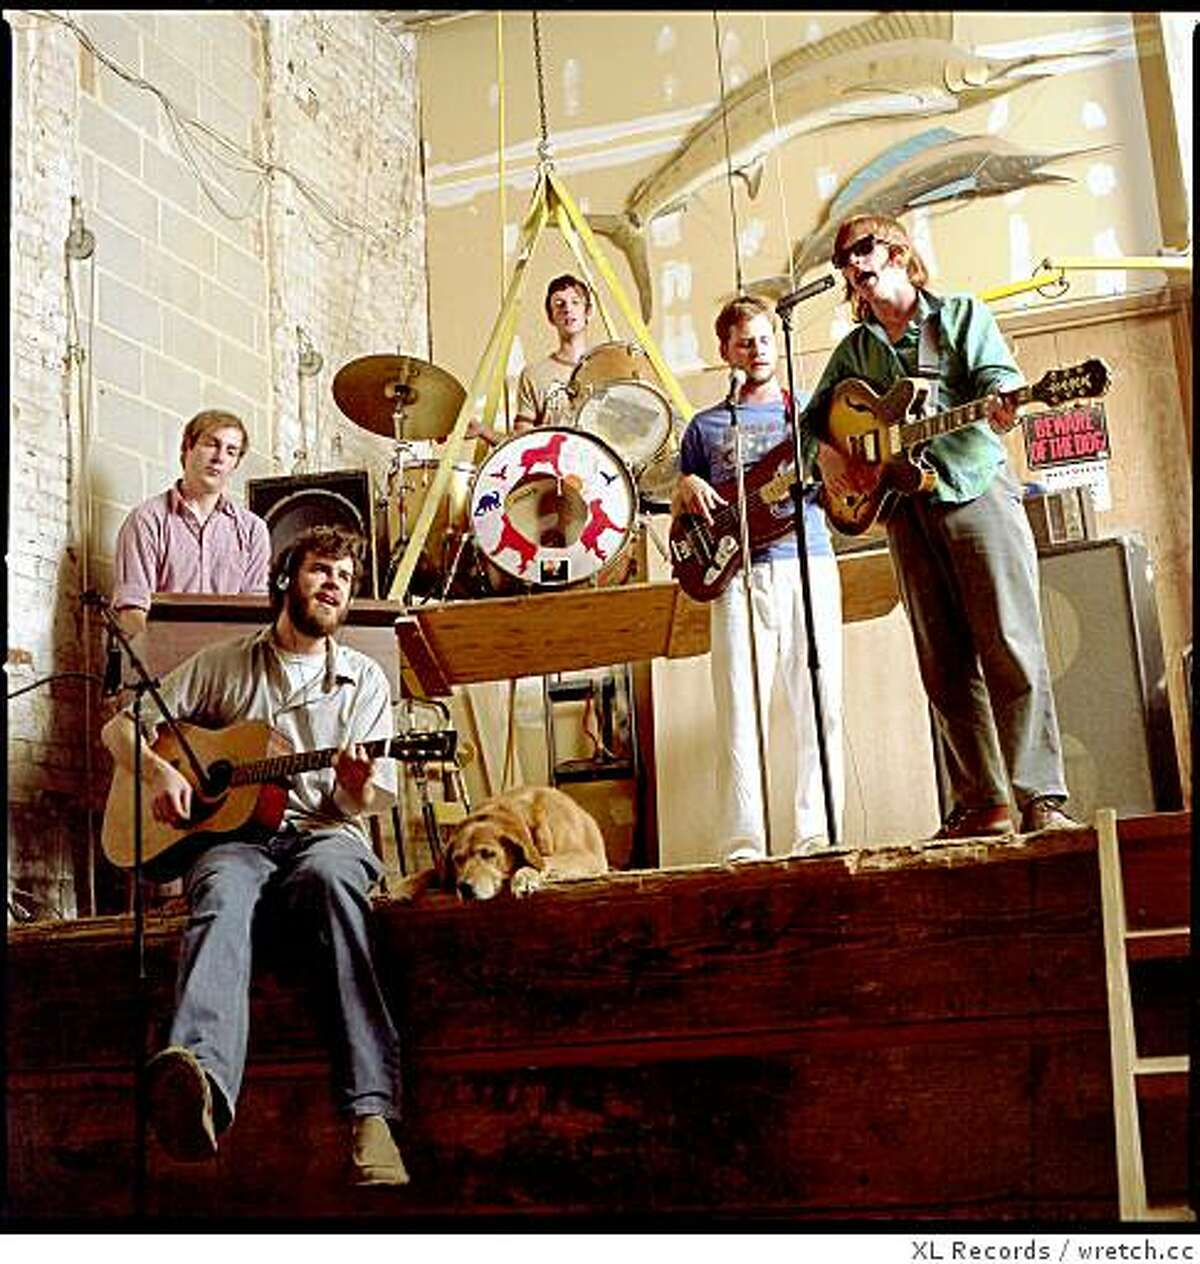 The band Vampire Weekend plays West African style jazz